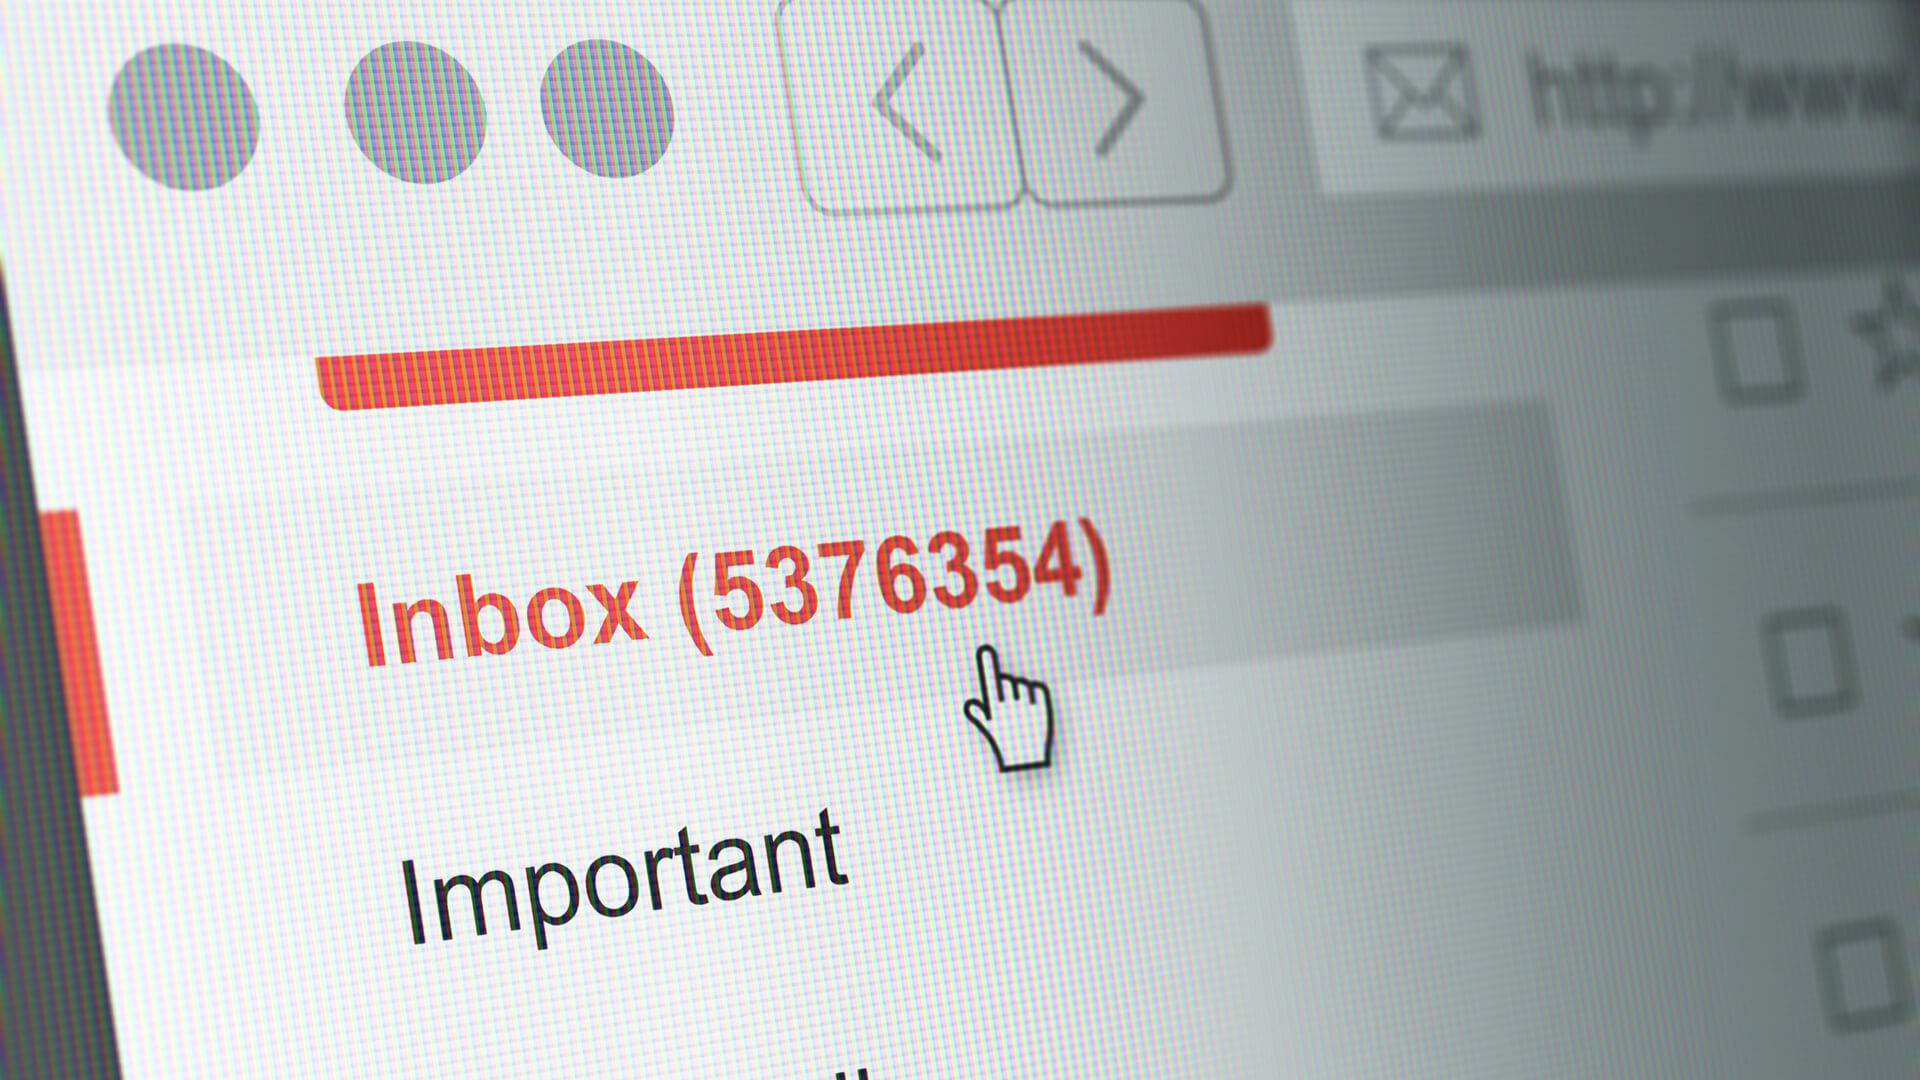 Don't be too quick to dismiss established best practices for email